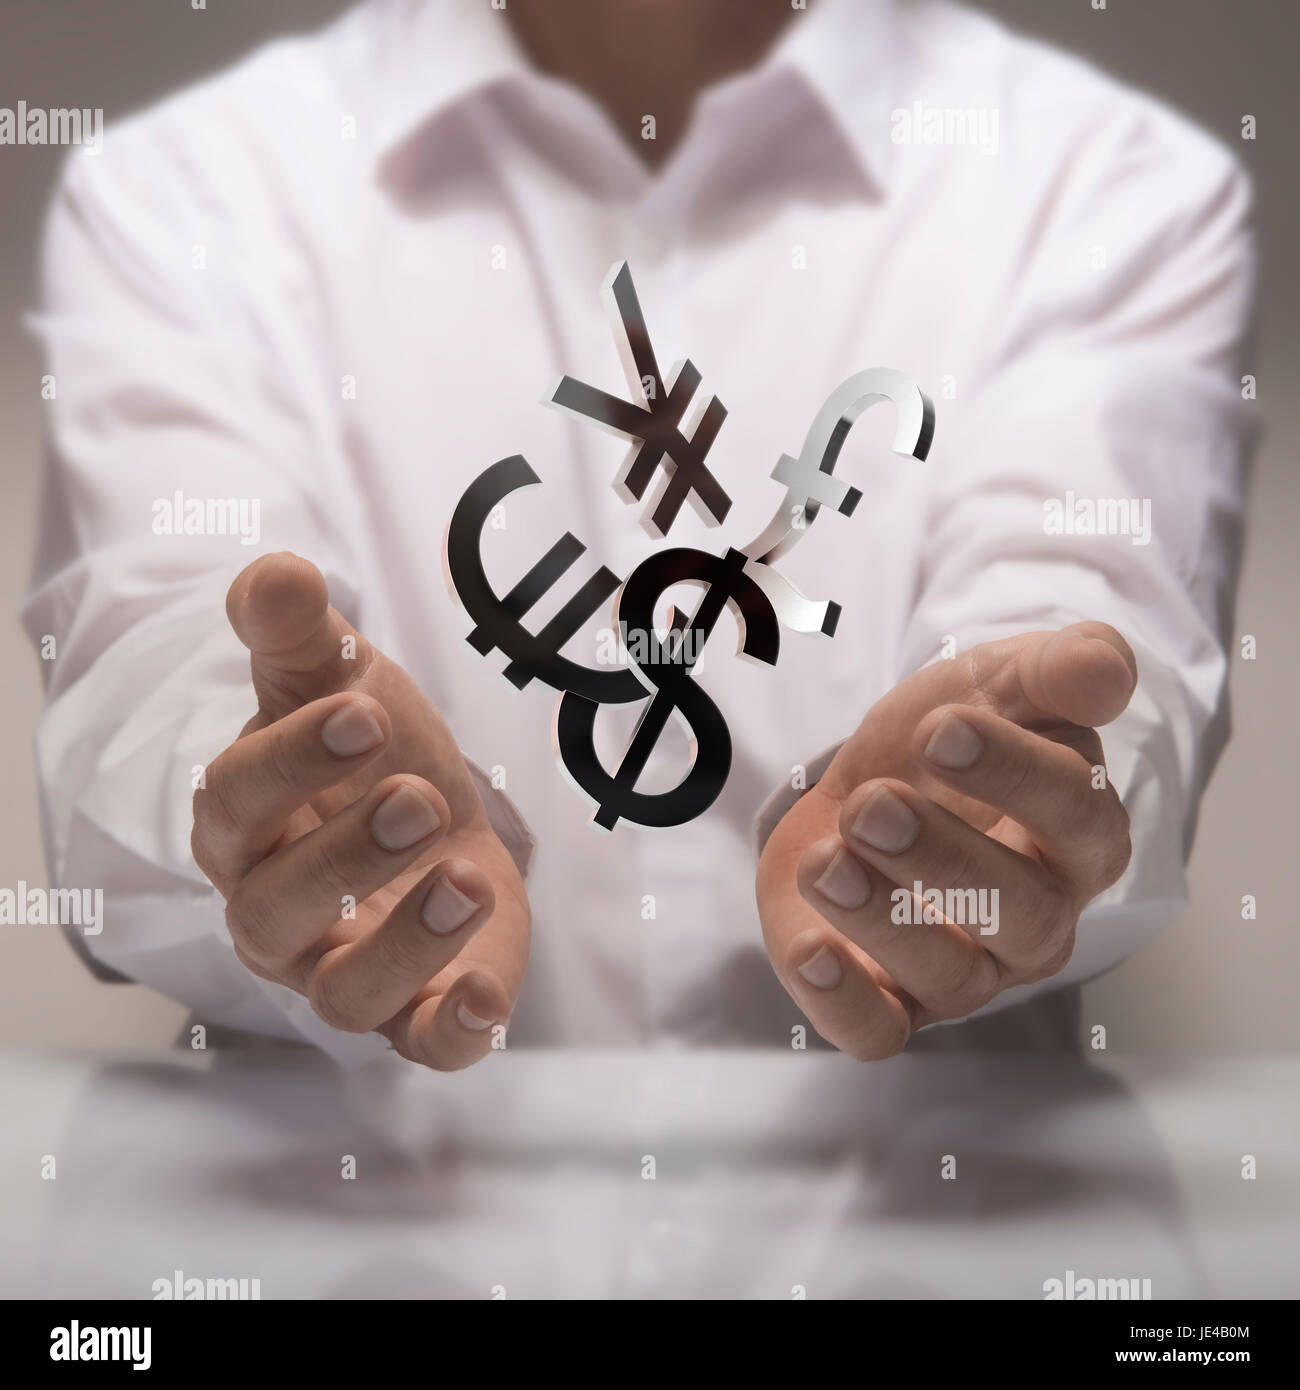 Man hands holding currencies symbols currency exchange service man hands holding currencies symbols currency exchange service concept biocorpaavc Images